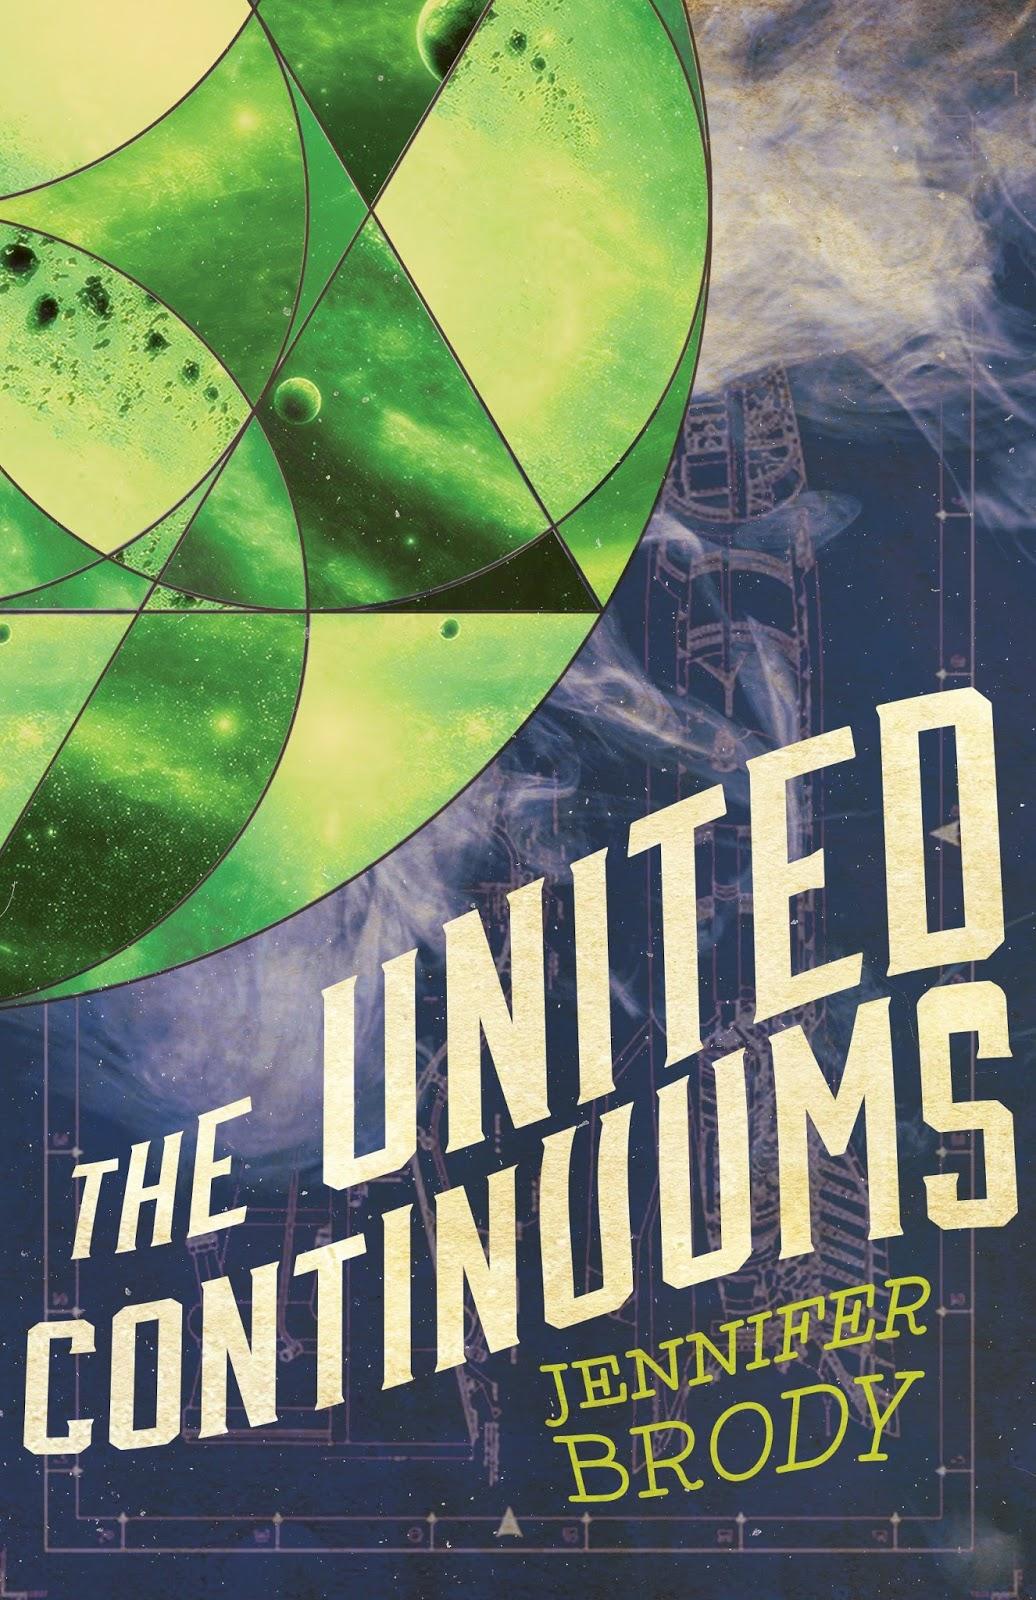 Jennifer Brody  The United Continuums: The Continuum Trilogy Book 3   Published By Turner (july 11, 2017)  Isbn13: 9781681622637